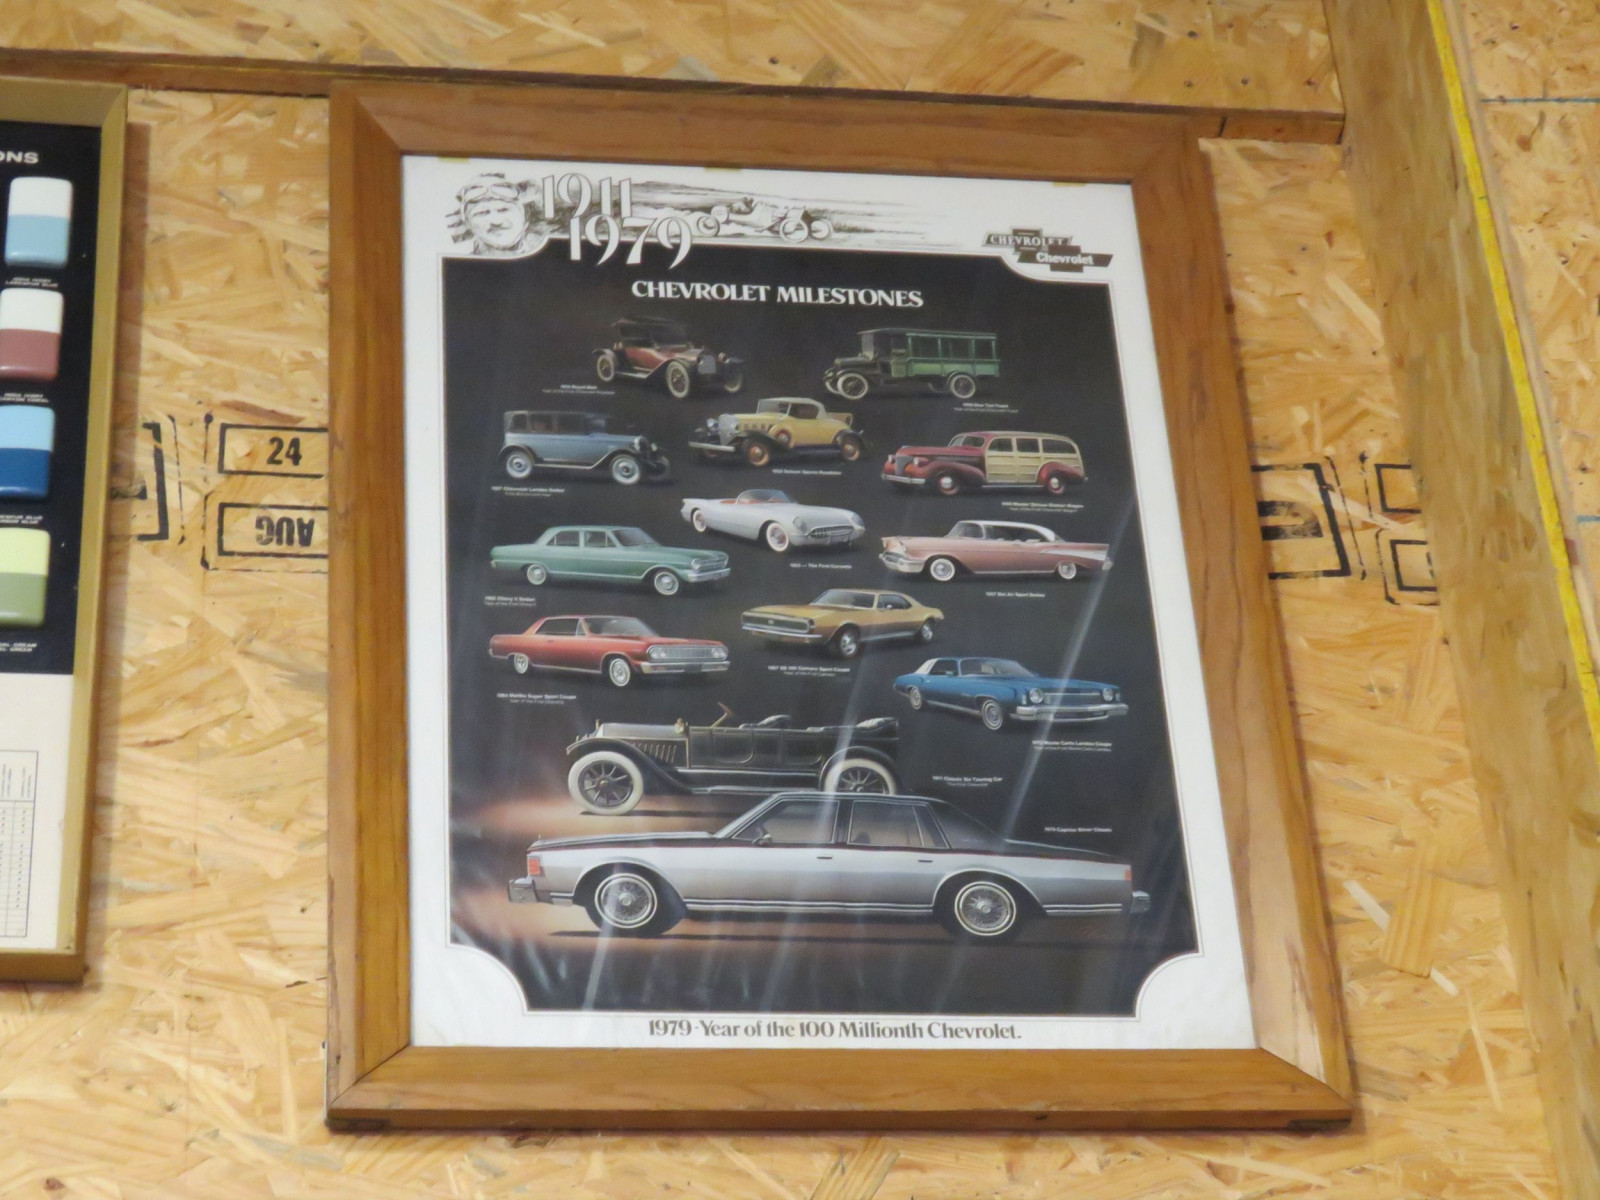 1911-1979 Framed Car Poster - Image 1